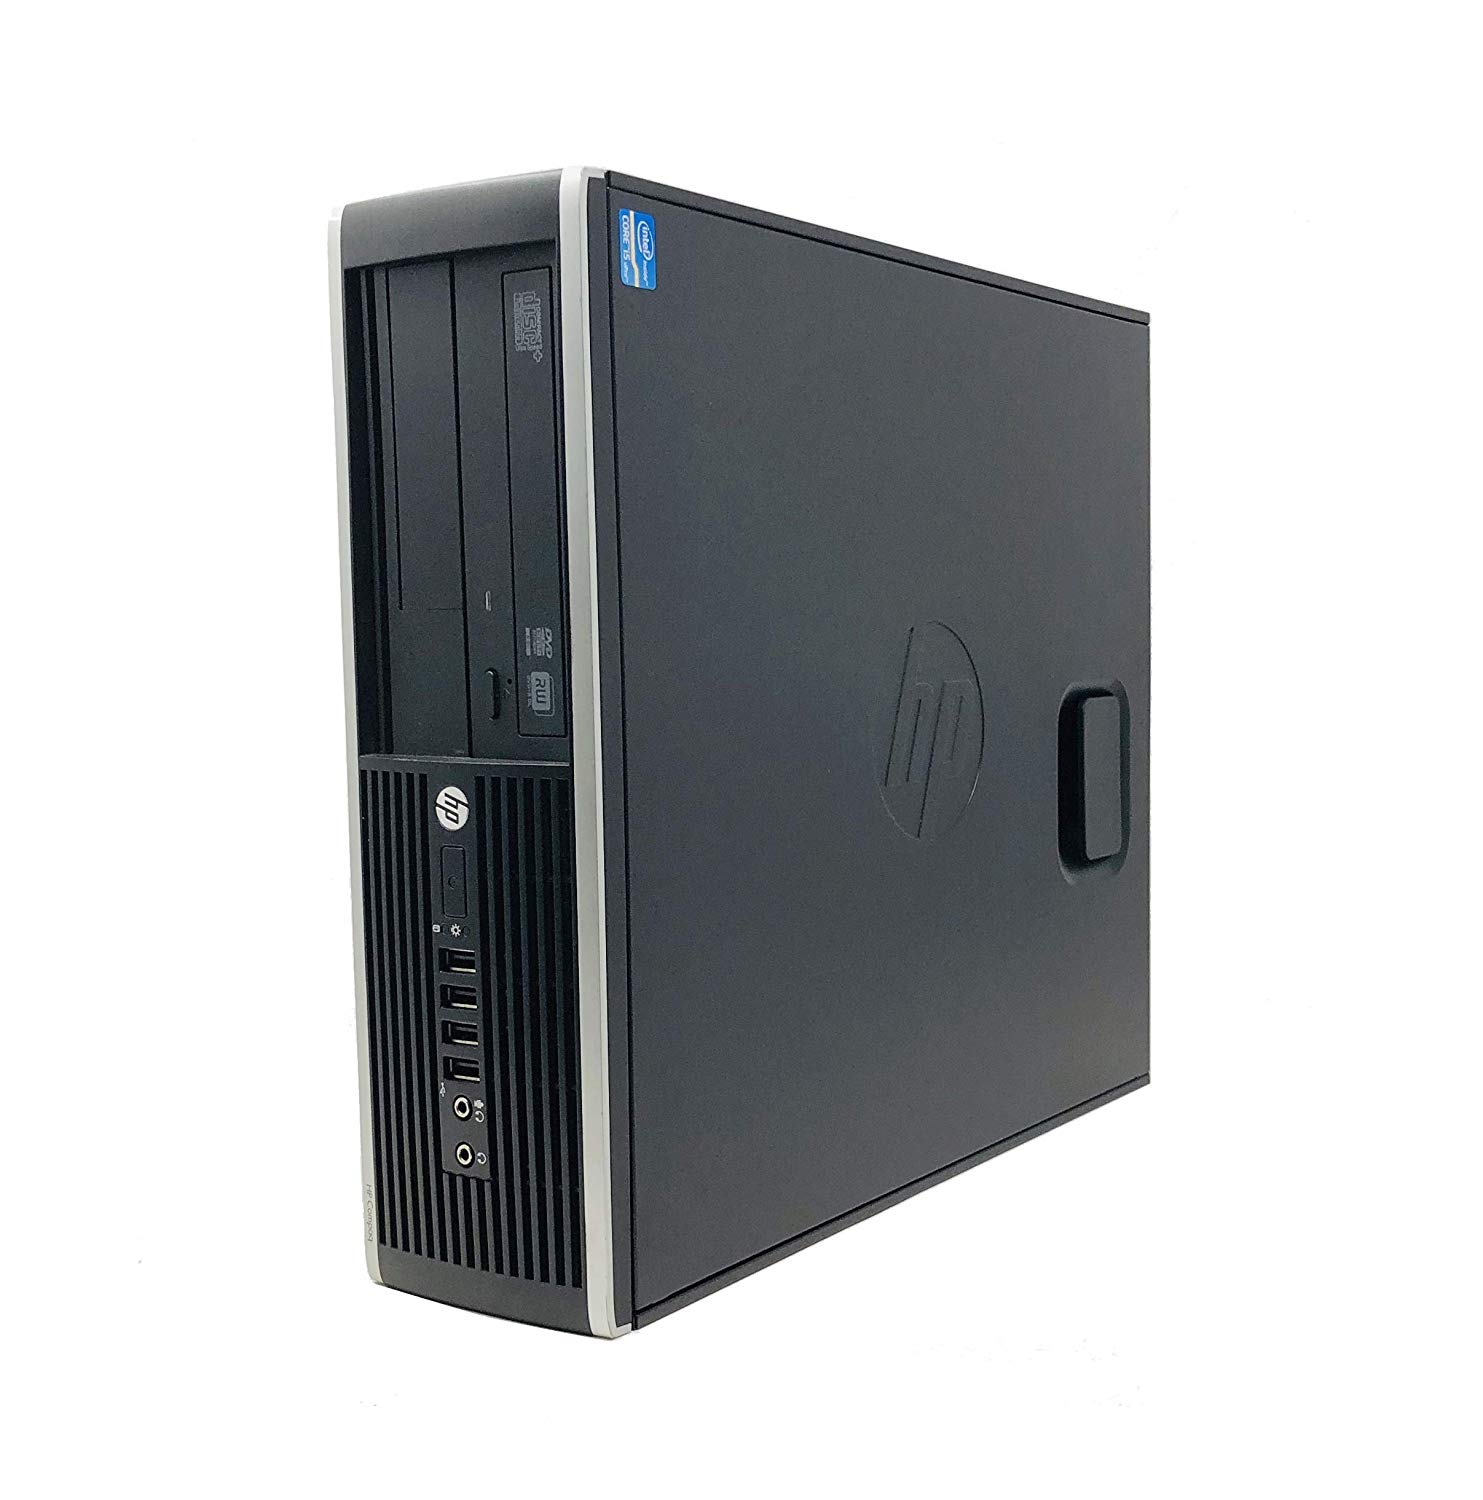 Hp Elite 8200 - Ordenador De Sobremesa (Intel  I5-2400,Lector, 8GB De RAM, Disco SSD De 960GB , Windows 7 PRO ) - Negro (Reacondicionado)